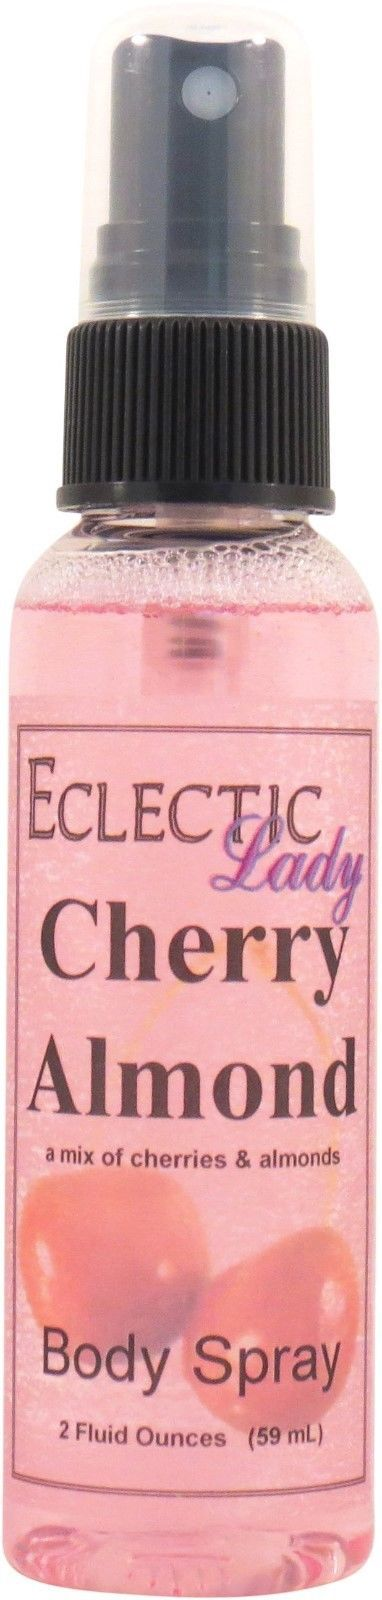 Cherry Almond Body Spray